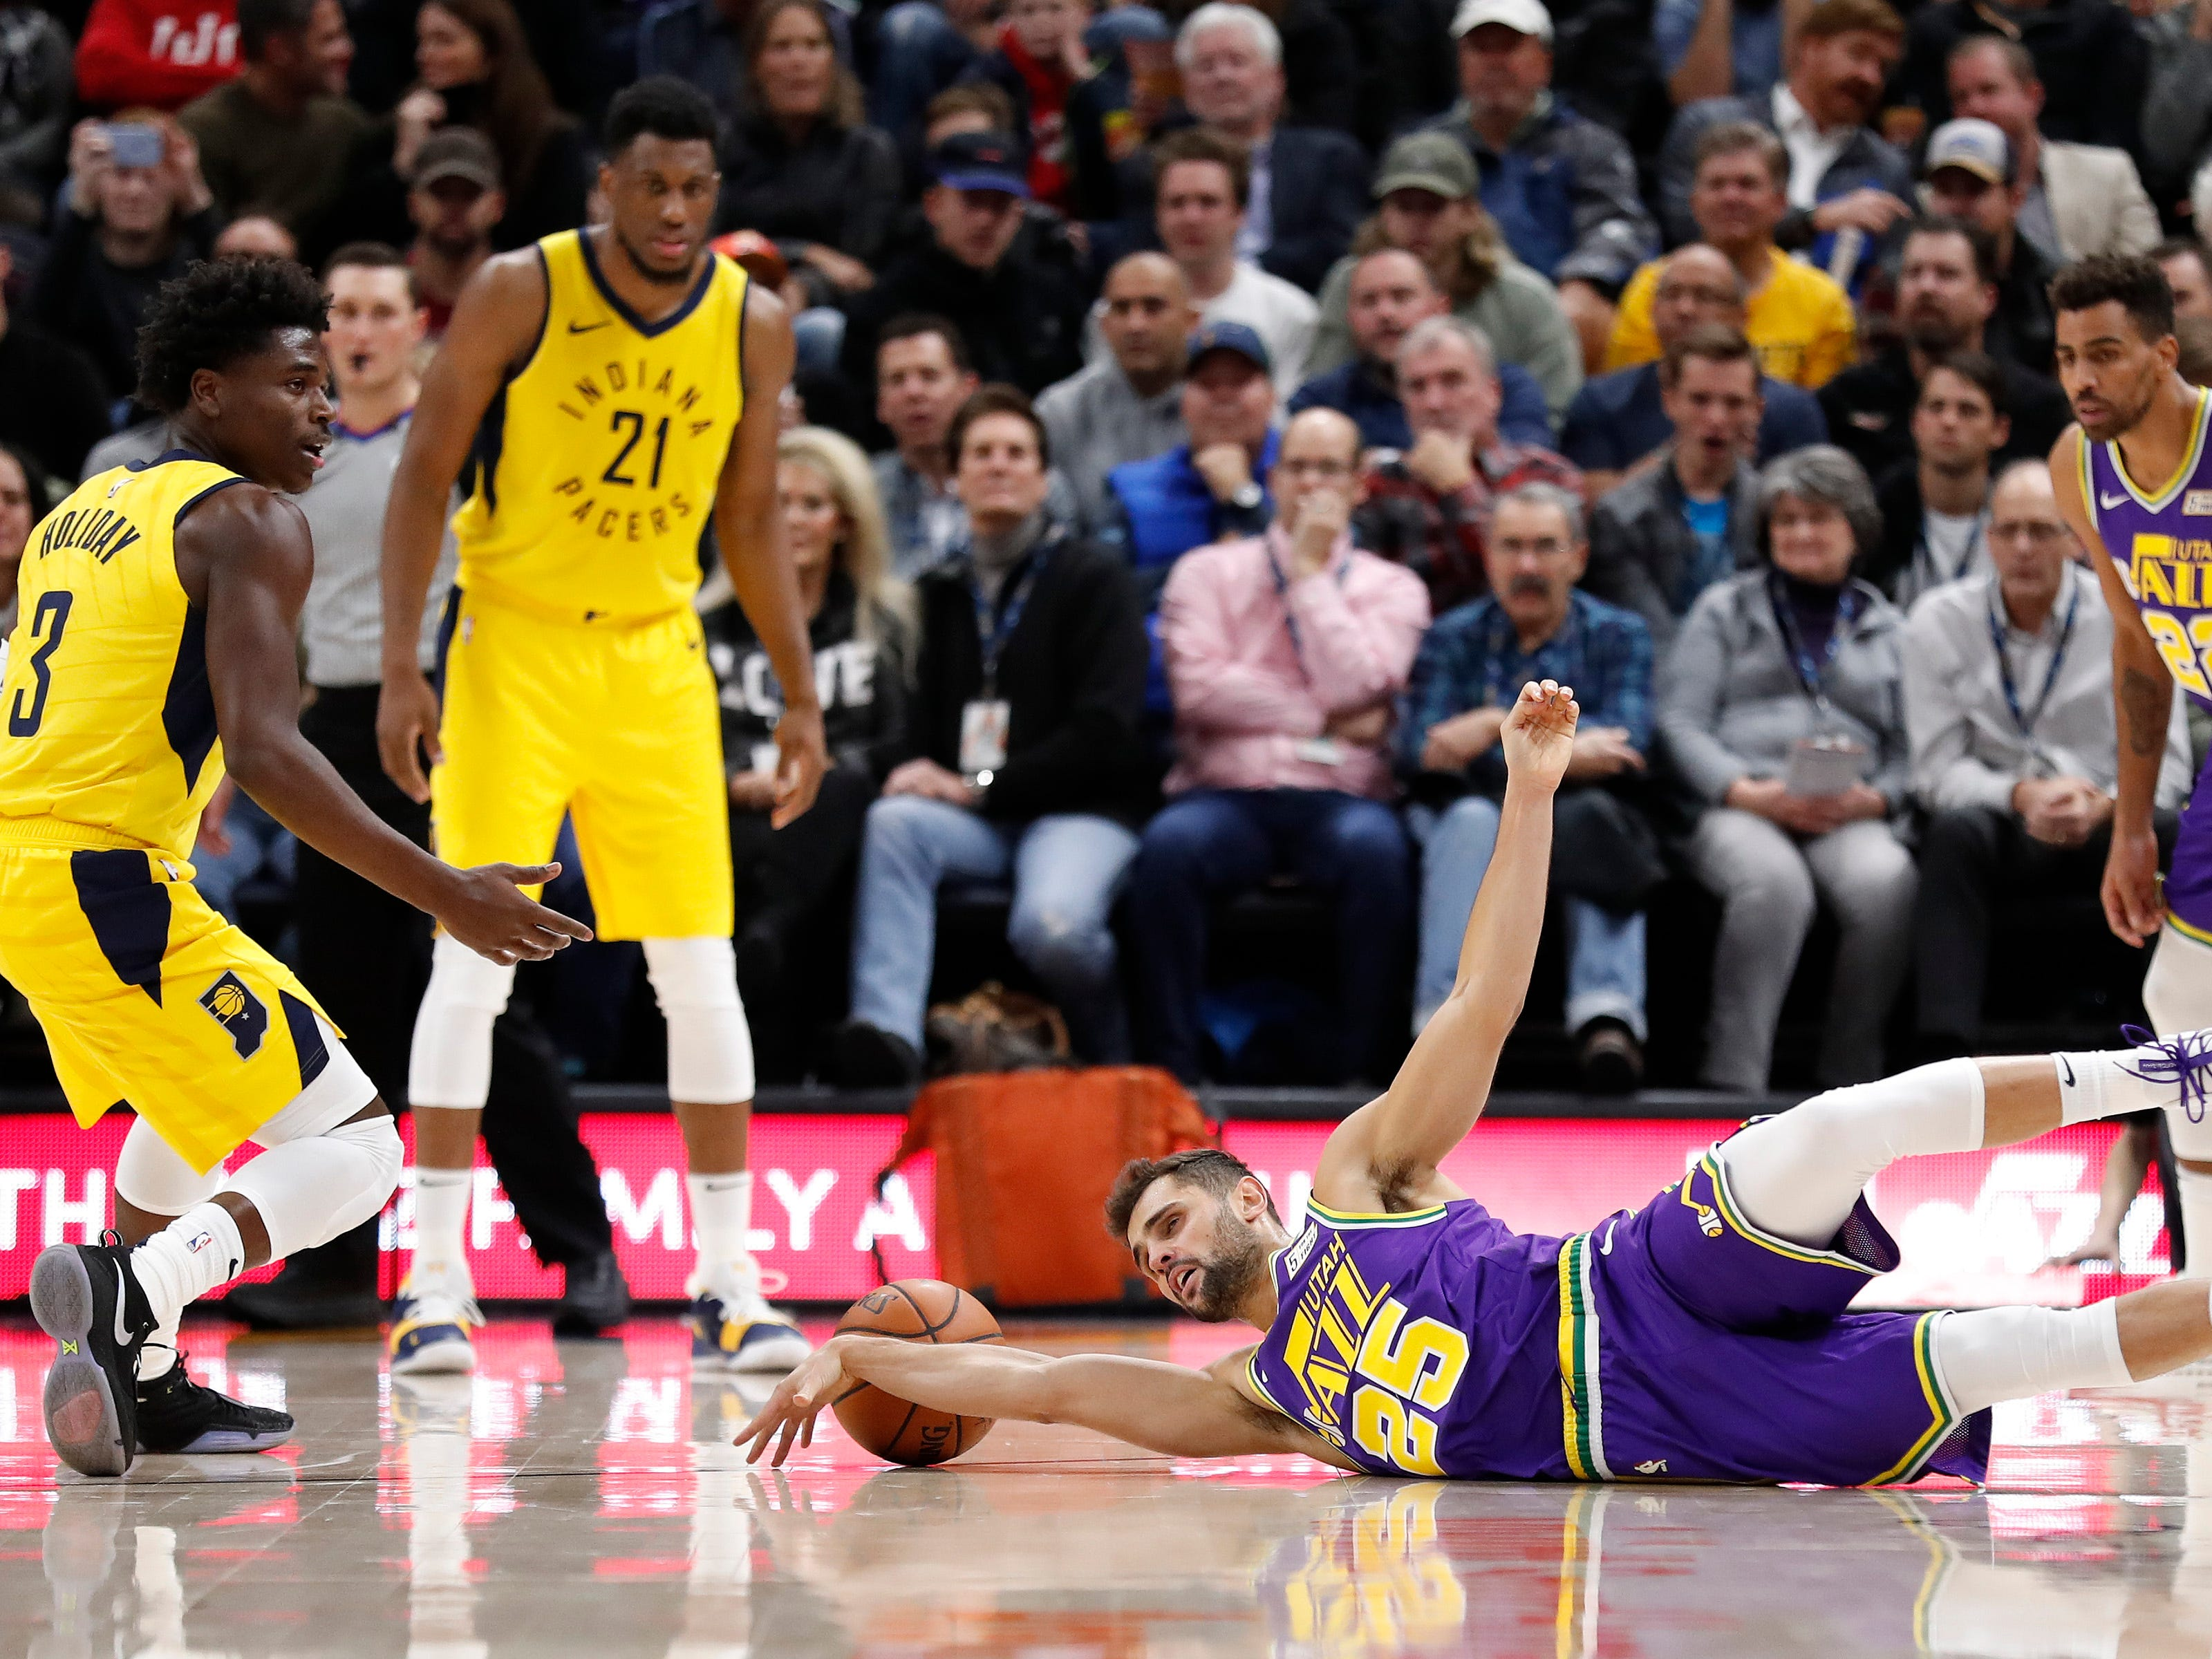 Utah Jazz guard Raul Neto (25) dives for the ball in front of Indiana Pacers guard Aaron Holiday (3) in the second half at Vivint Smart Home Arena.